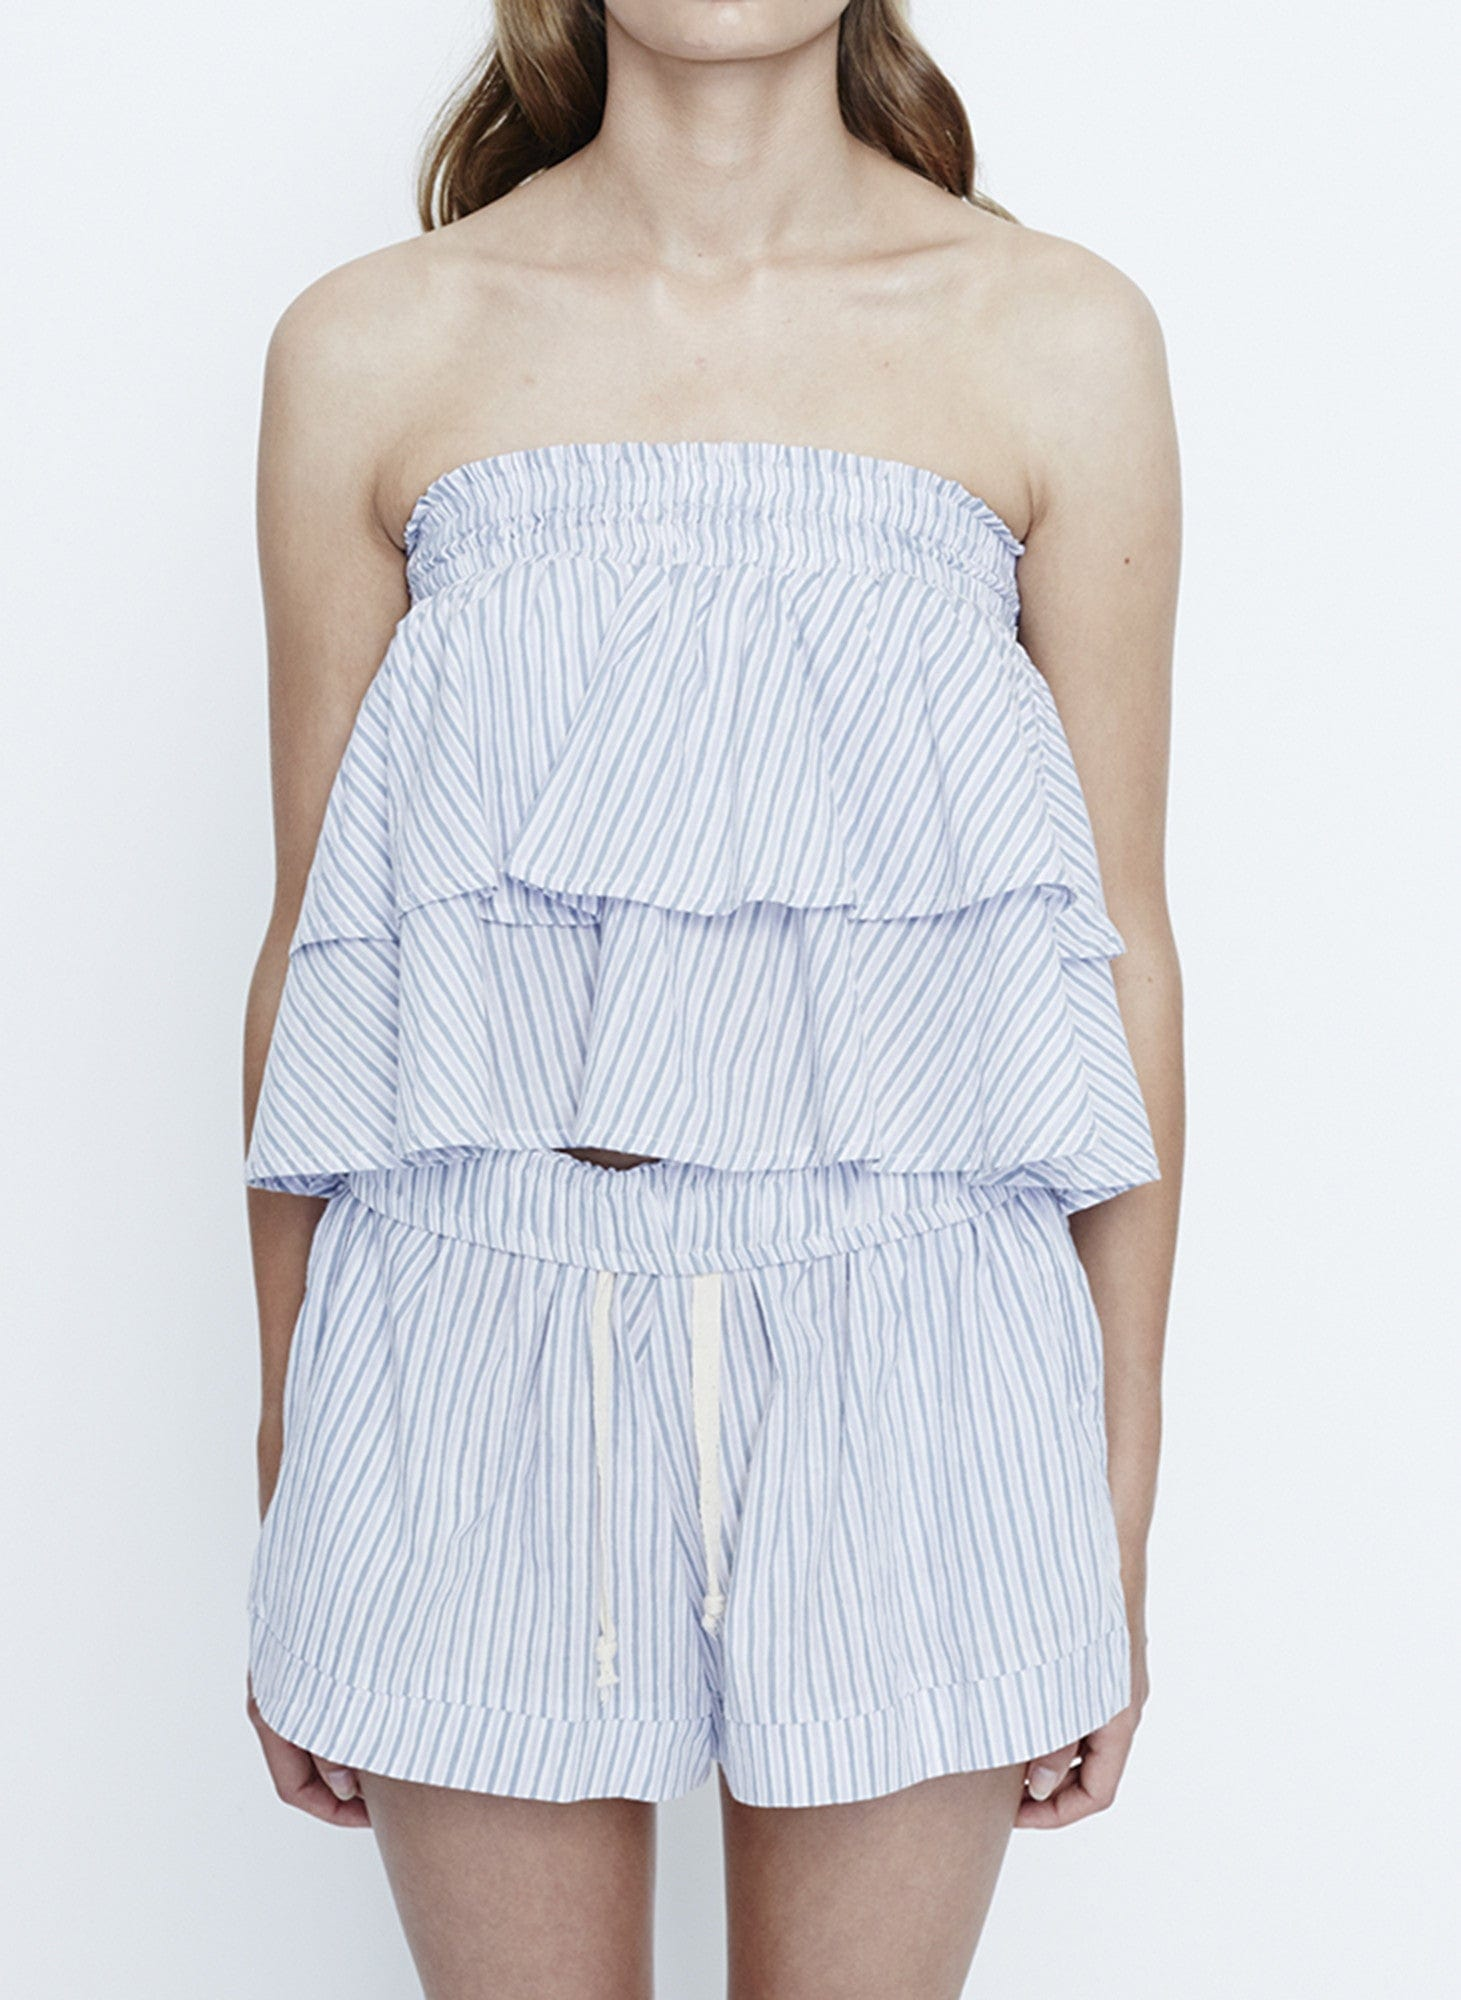 OCEANSIDE STRIPE PRINT - PARADISO TOP